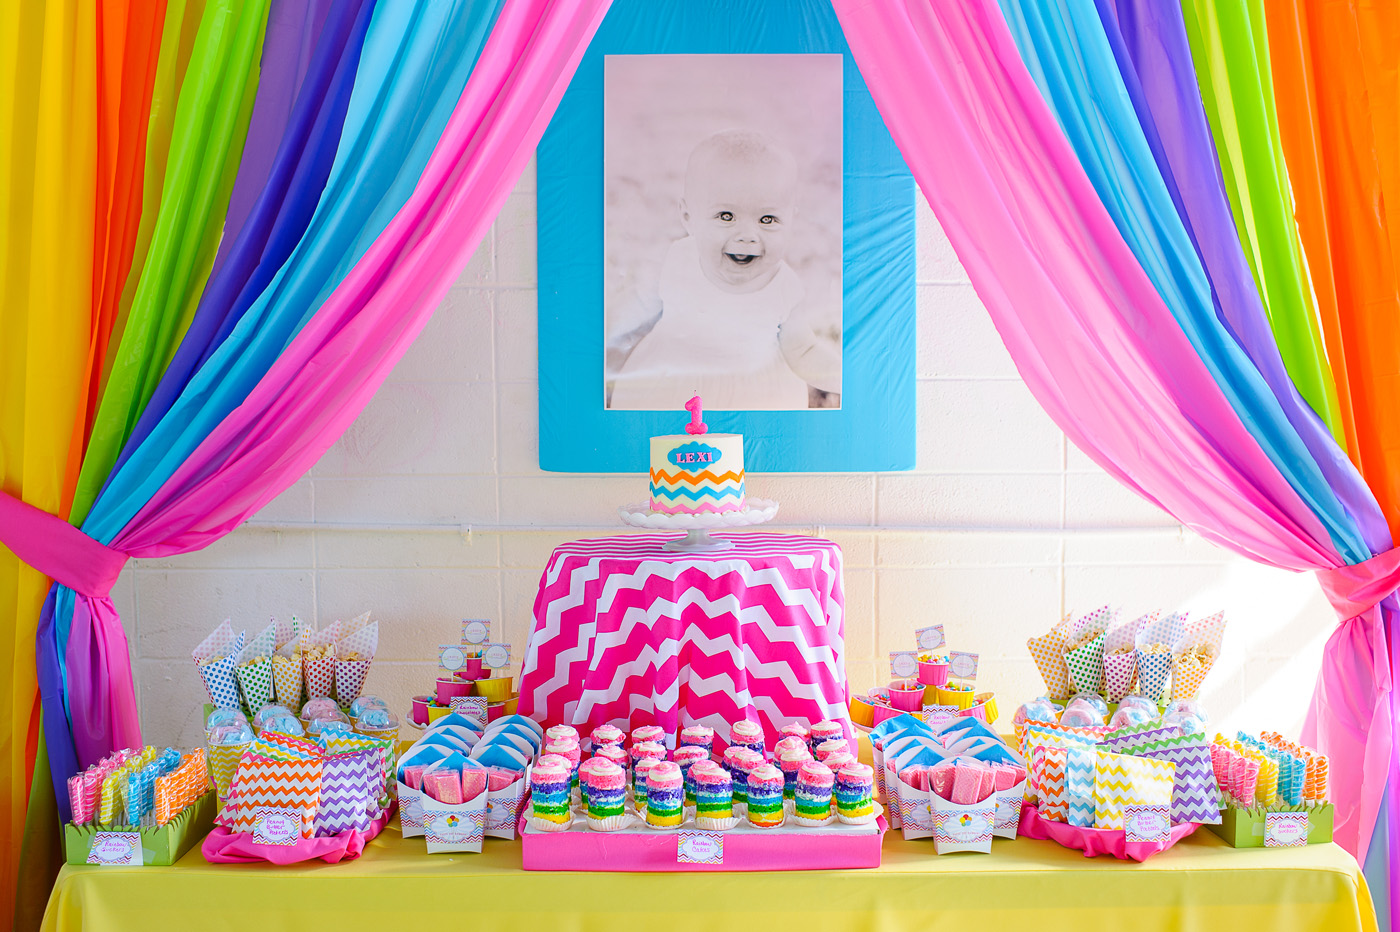 A rainbow 1st birthday party anders ruff custom designs llc for 1st birthday decoration themes